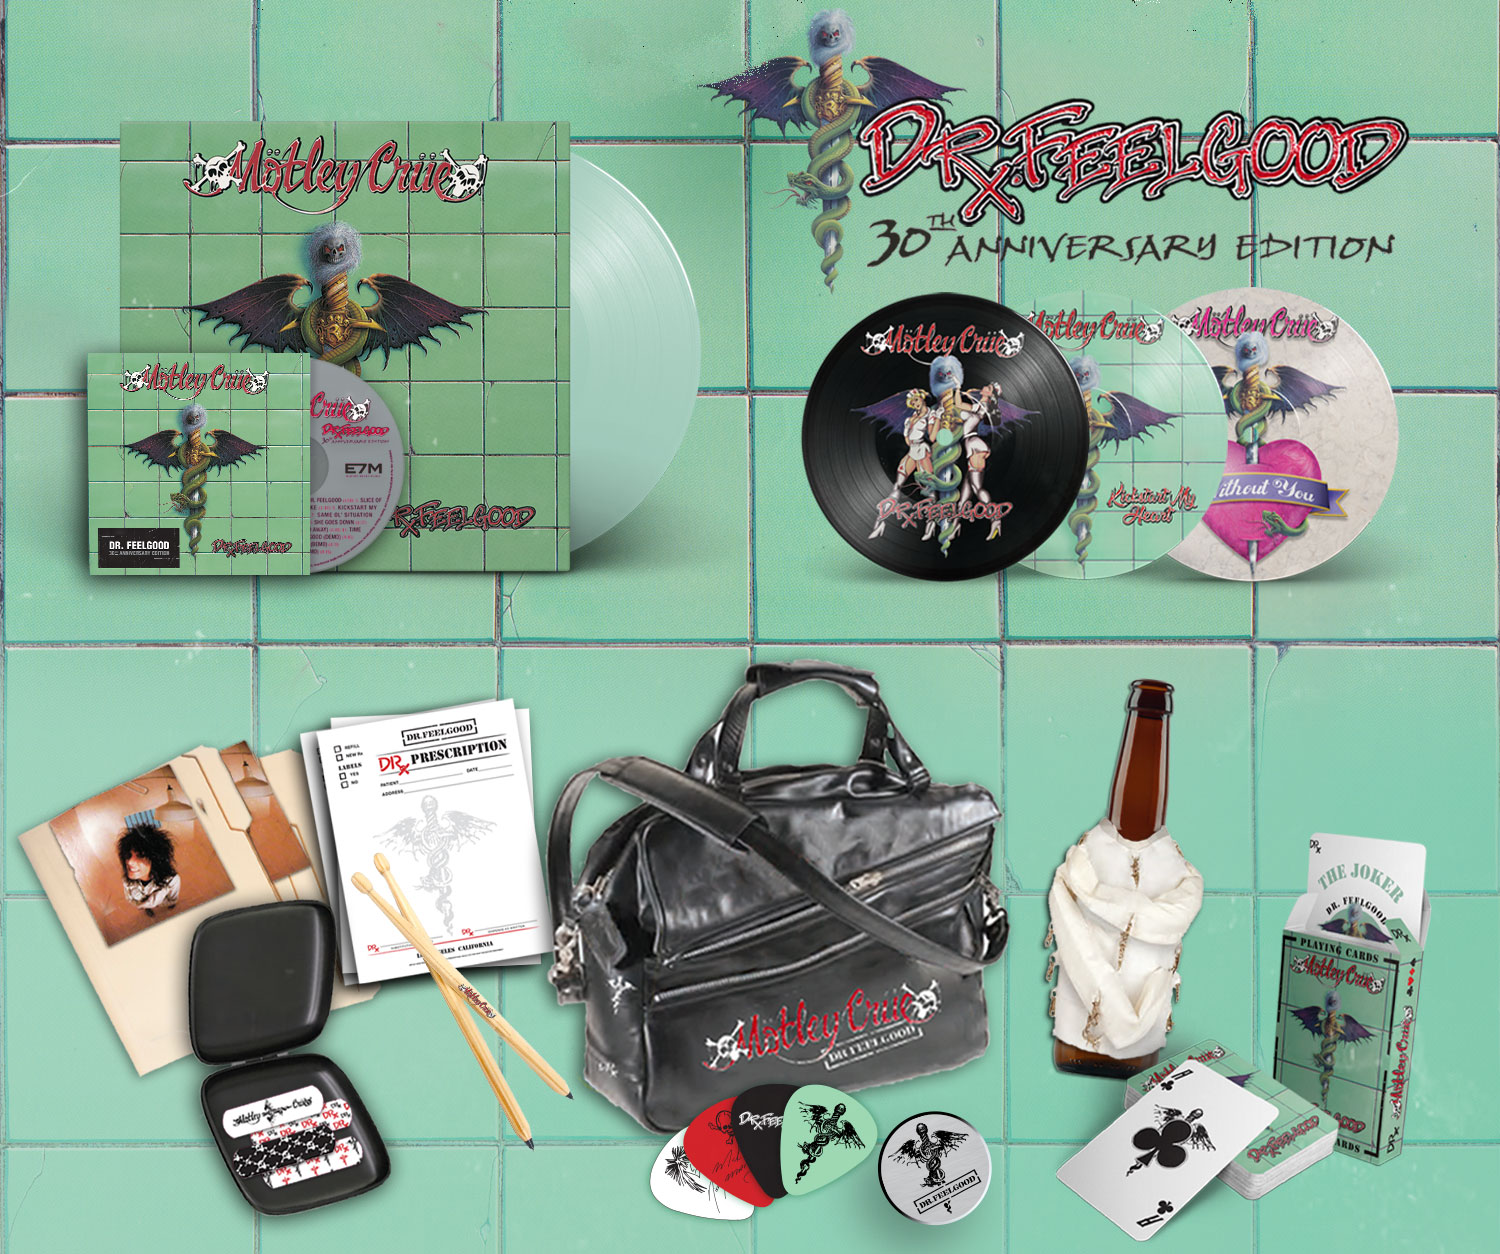 Dr. Feelgood 30th Anniversary Edition